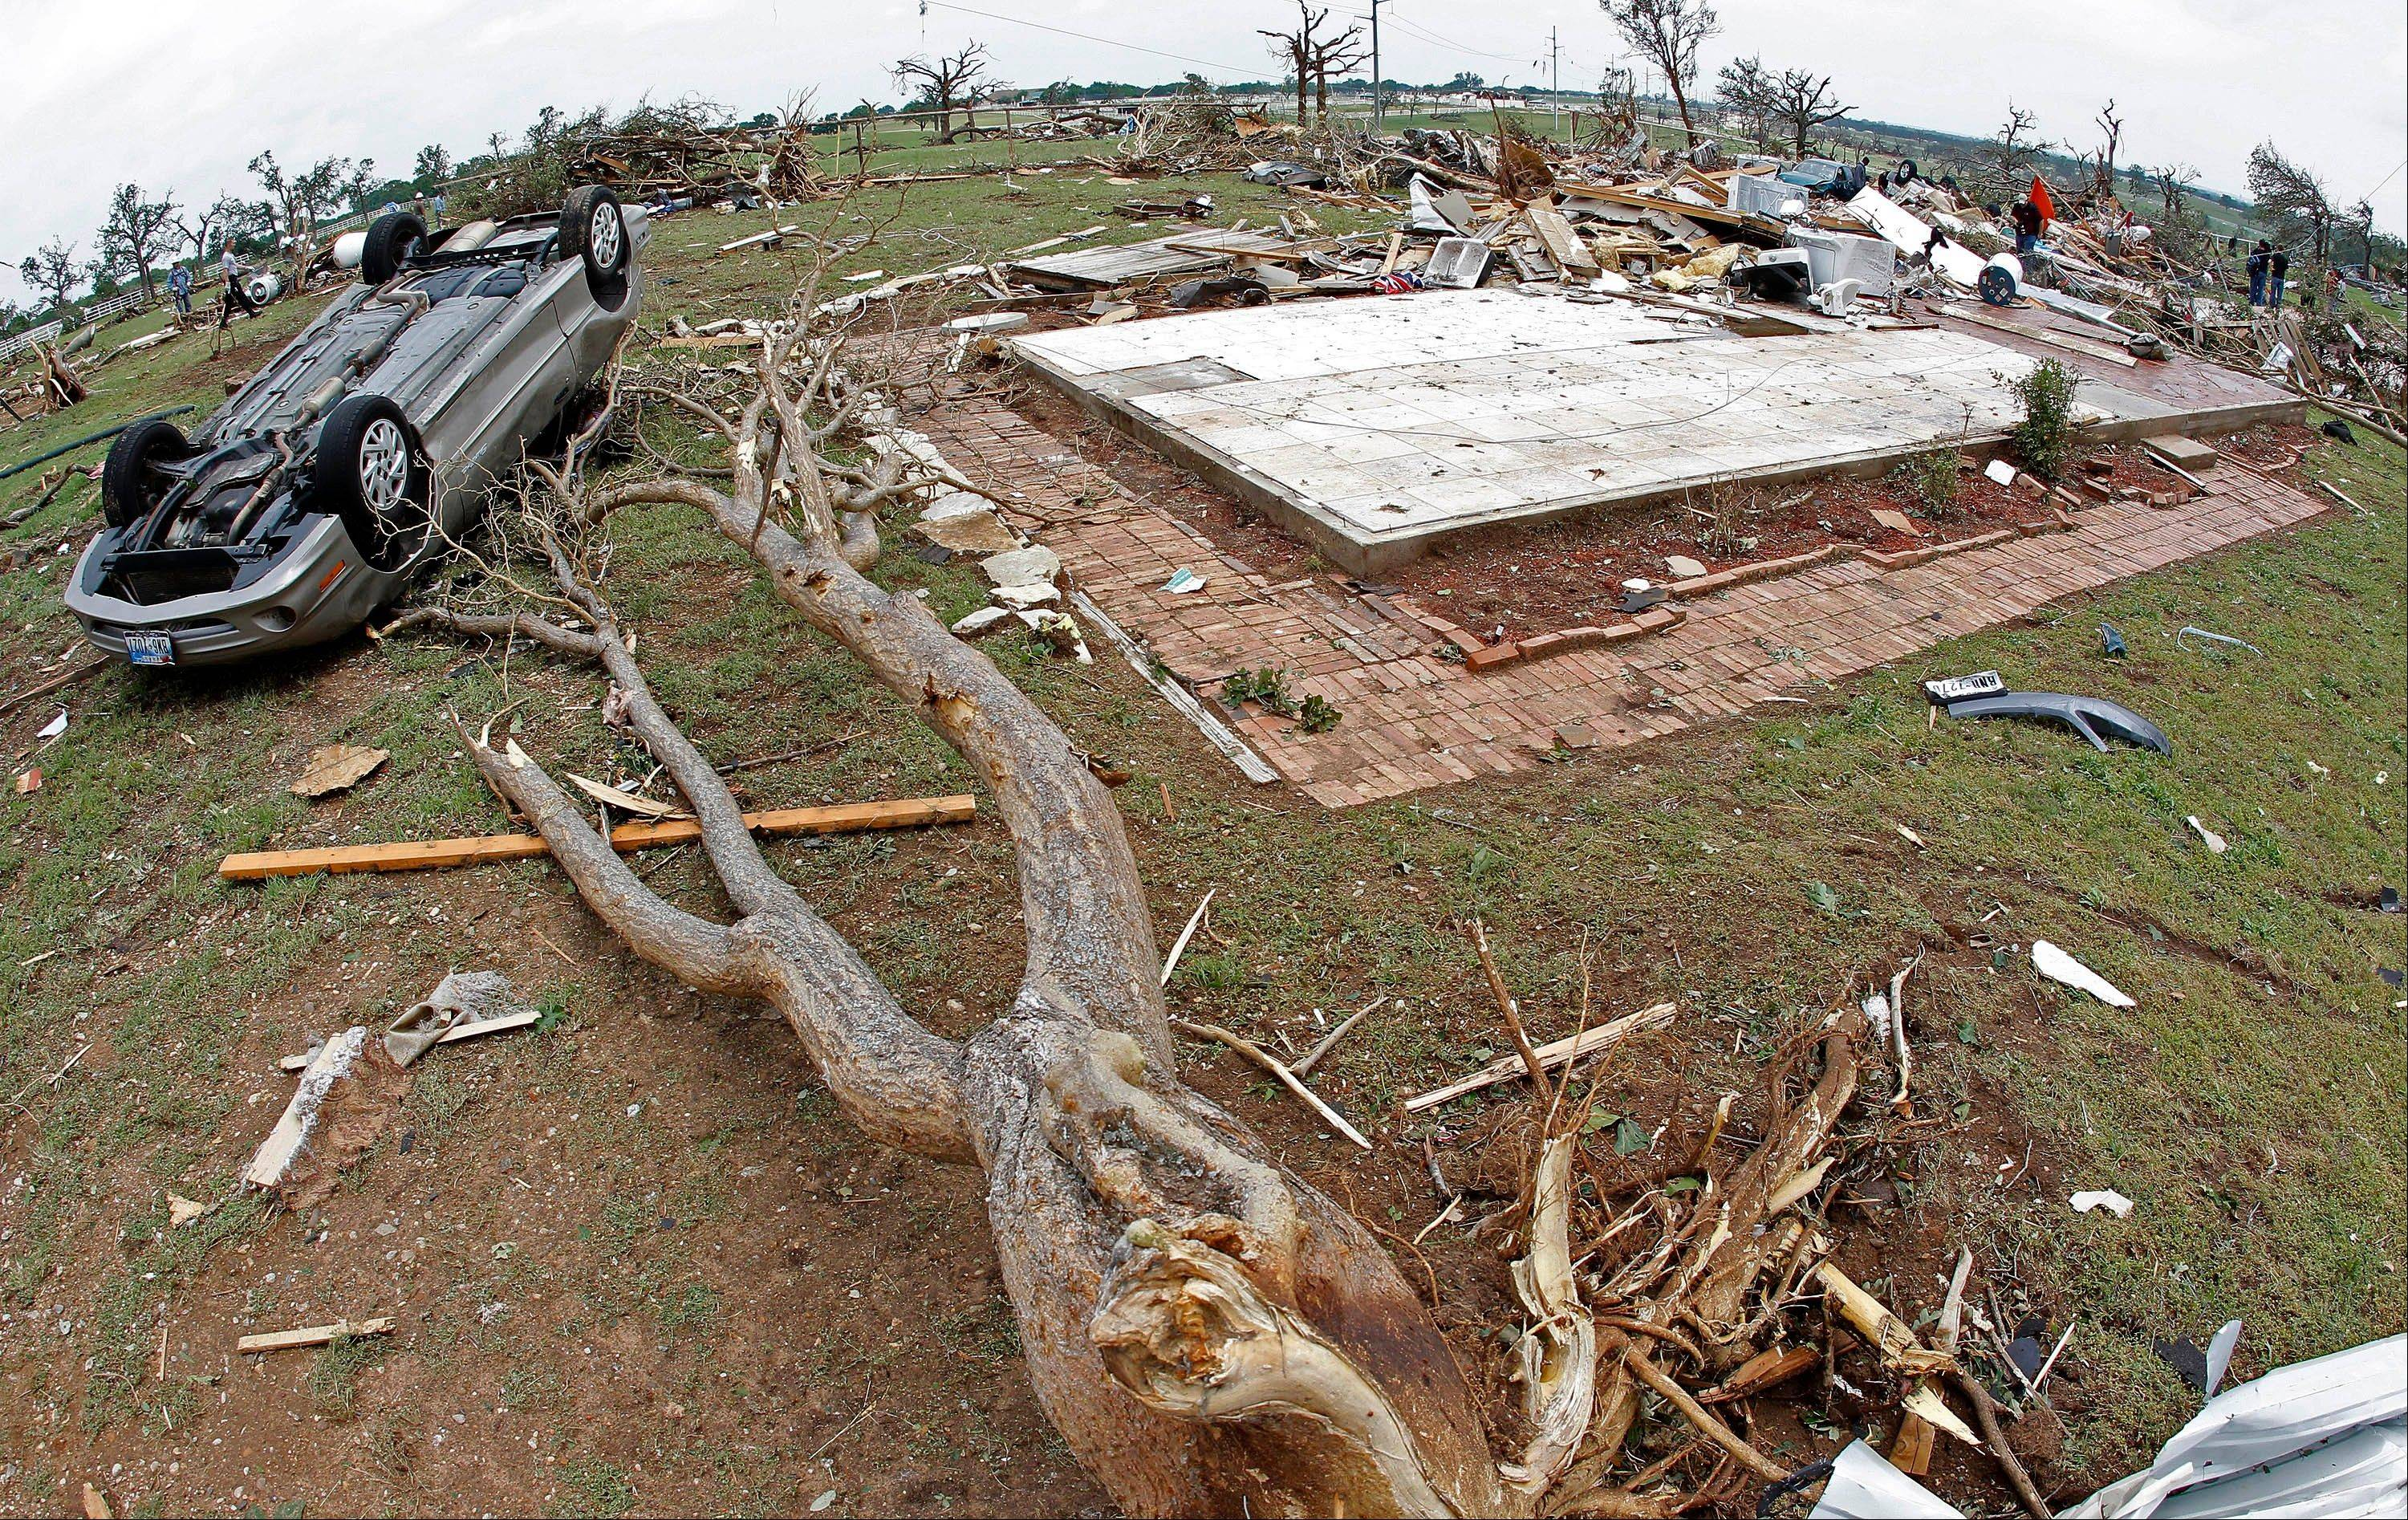 A toppled car and crushed trees lay next to the slab of a house swept off its foundation in the destroyed Rancho Brazos neighborhood of Granbury, Texas, Thursday, May 16, 2013. Ten tornadoes touched down in several small communities in North Texas overnight, leaving at least six people dead, dozens injured and hundreds homeless. Emergency responders were still searching for missing people Thursday afternoon.